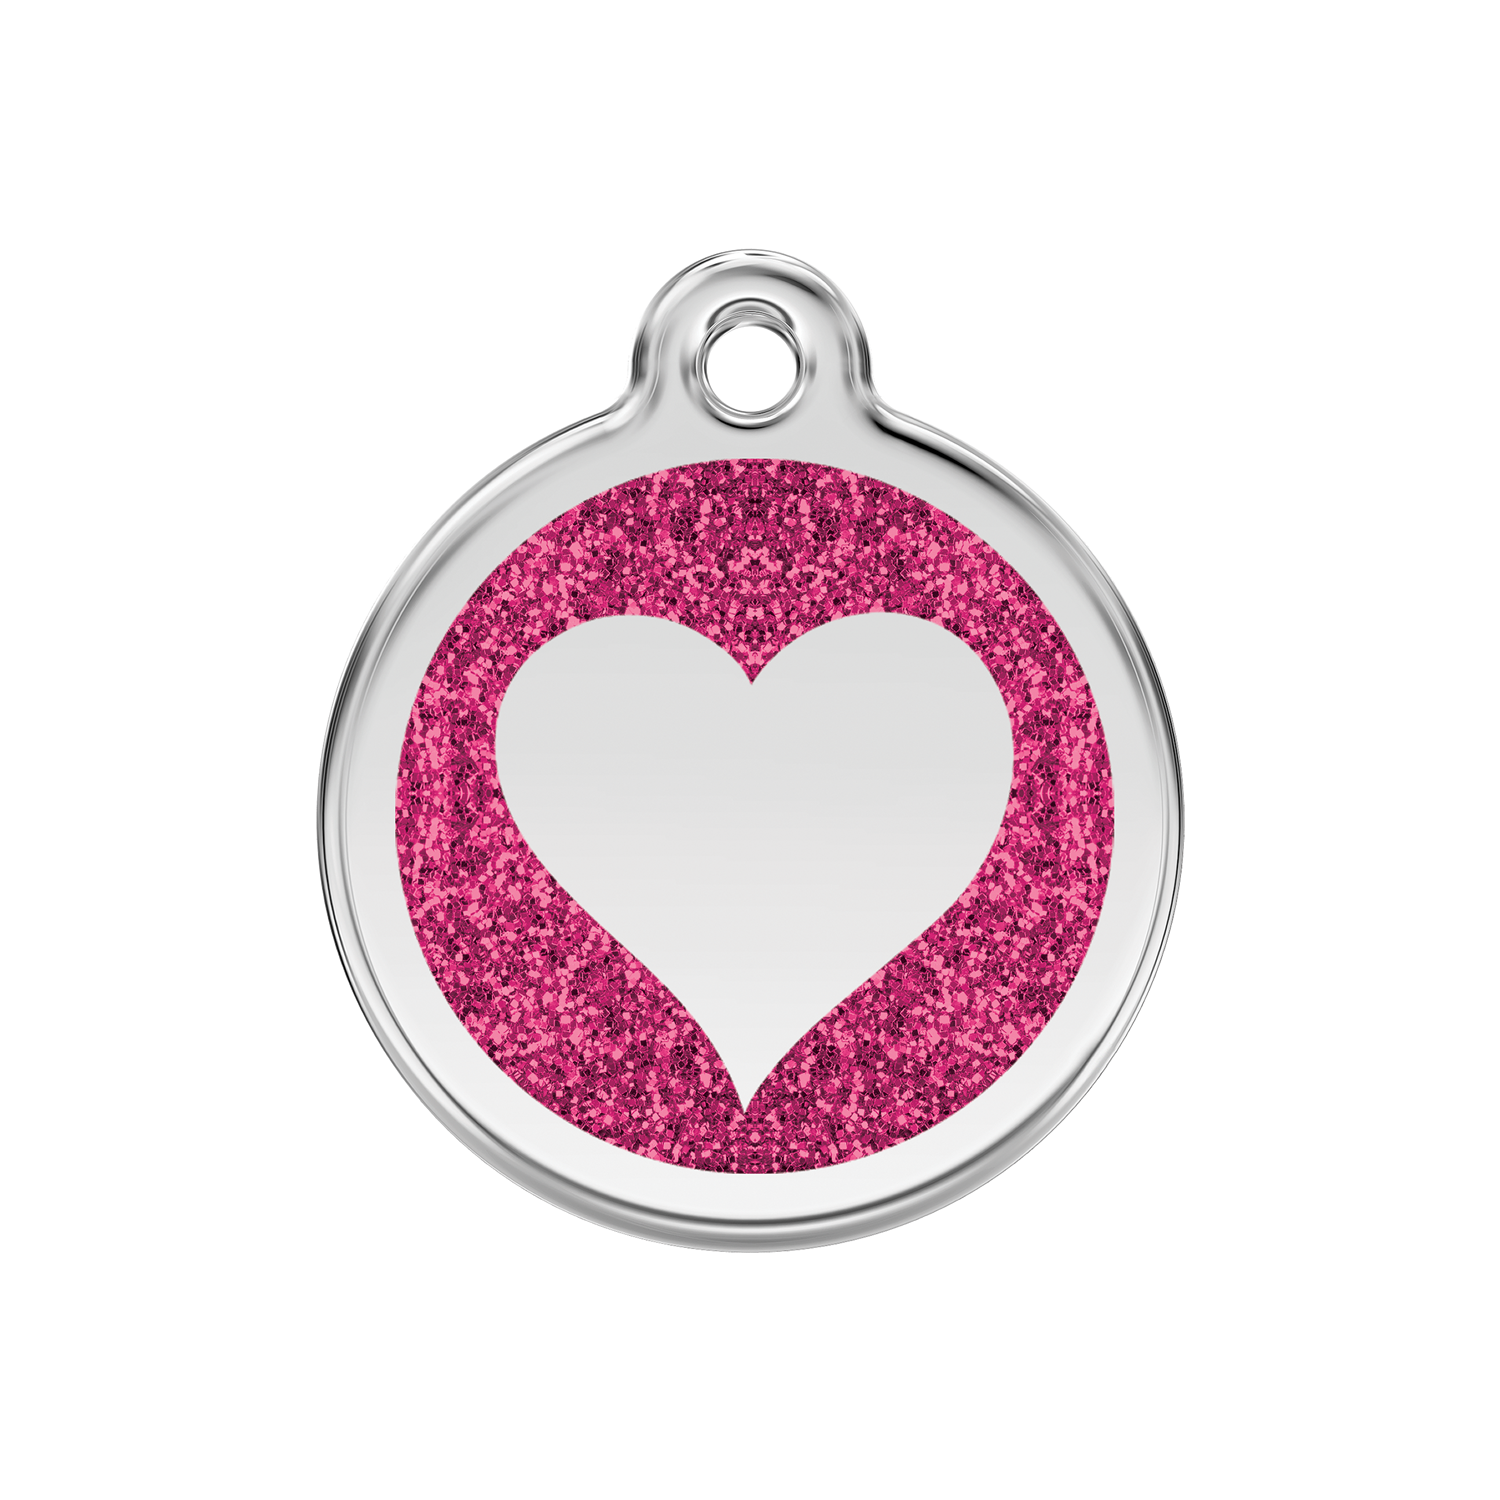 Hot Pink Heart Medium Glitter Enamel & Stainless Steel Tag>